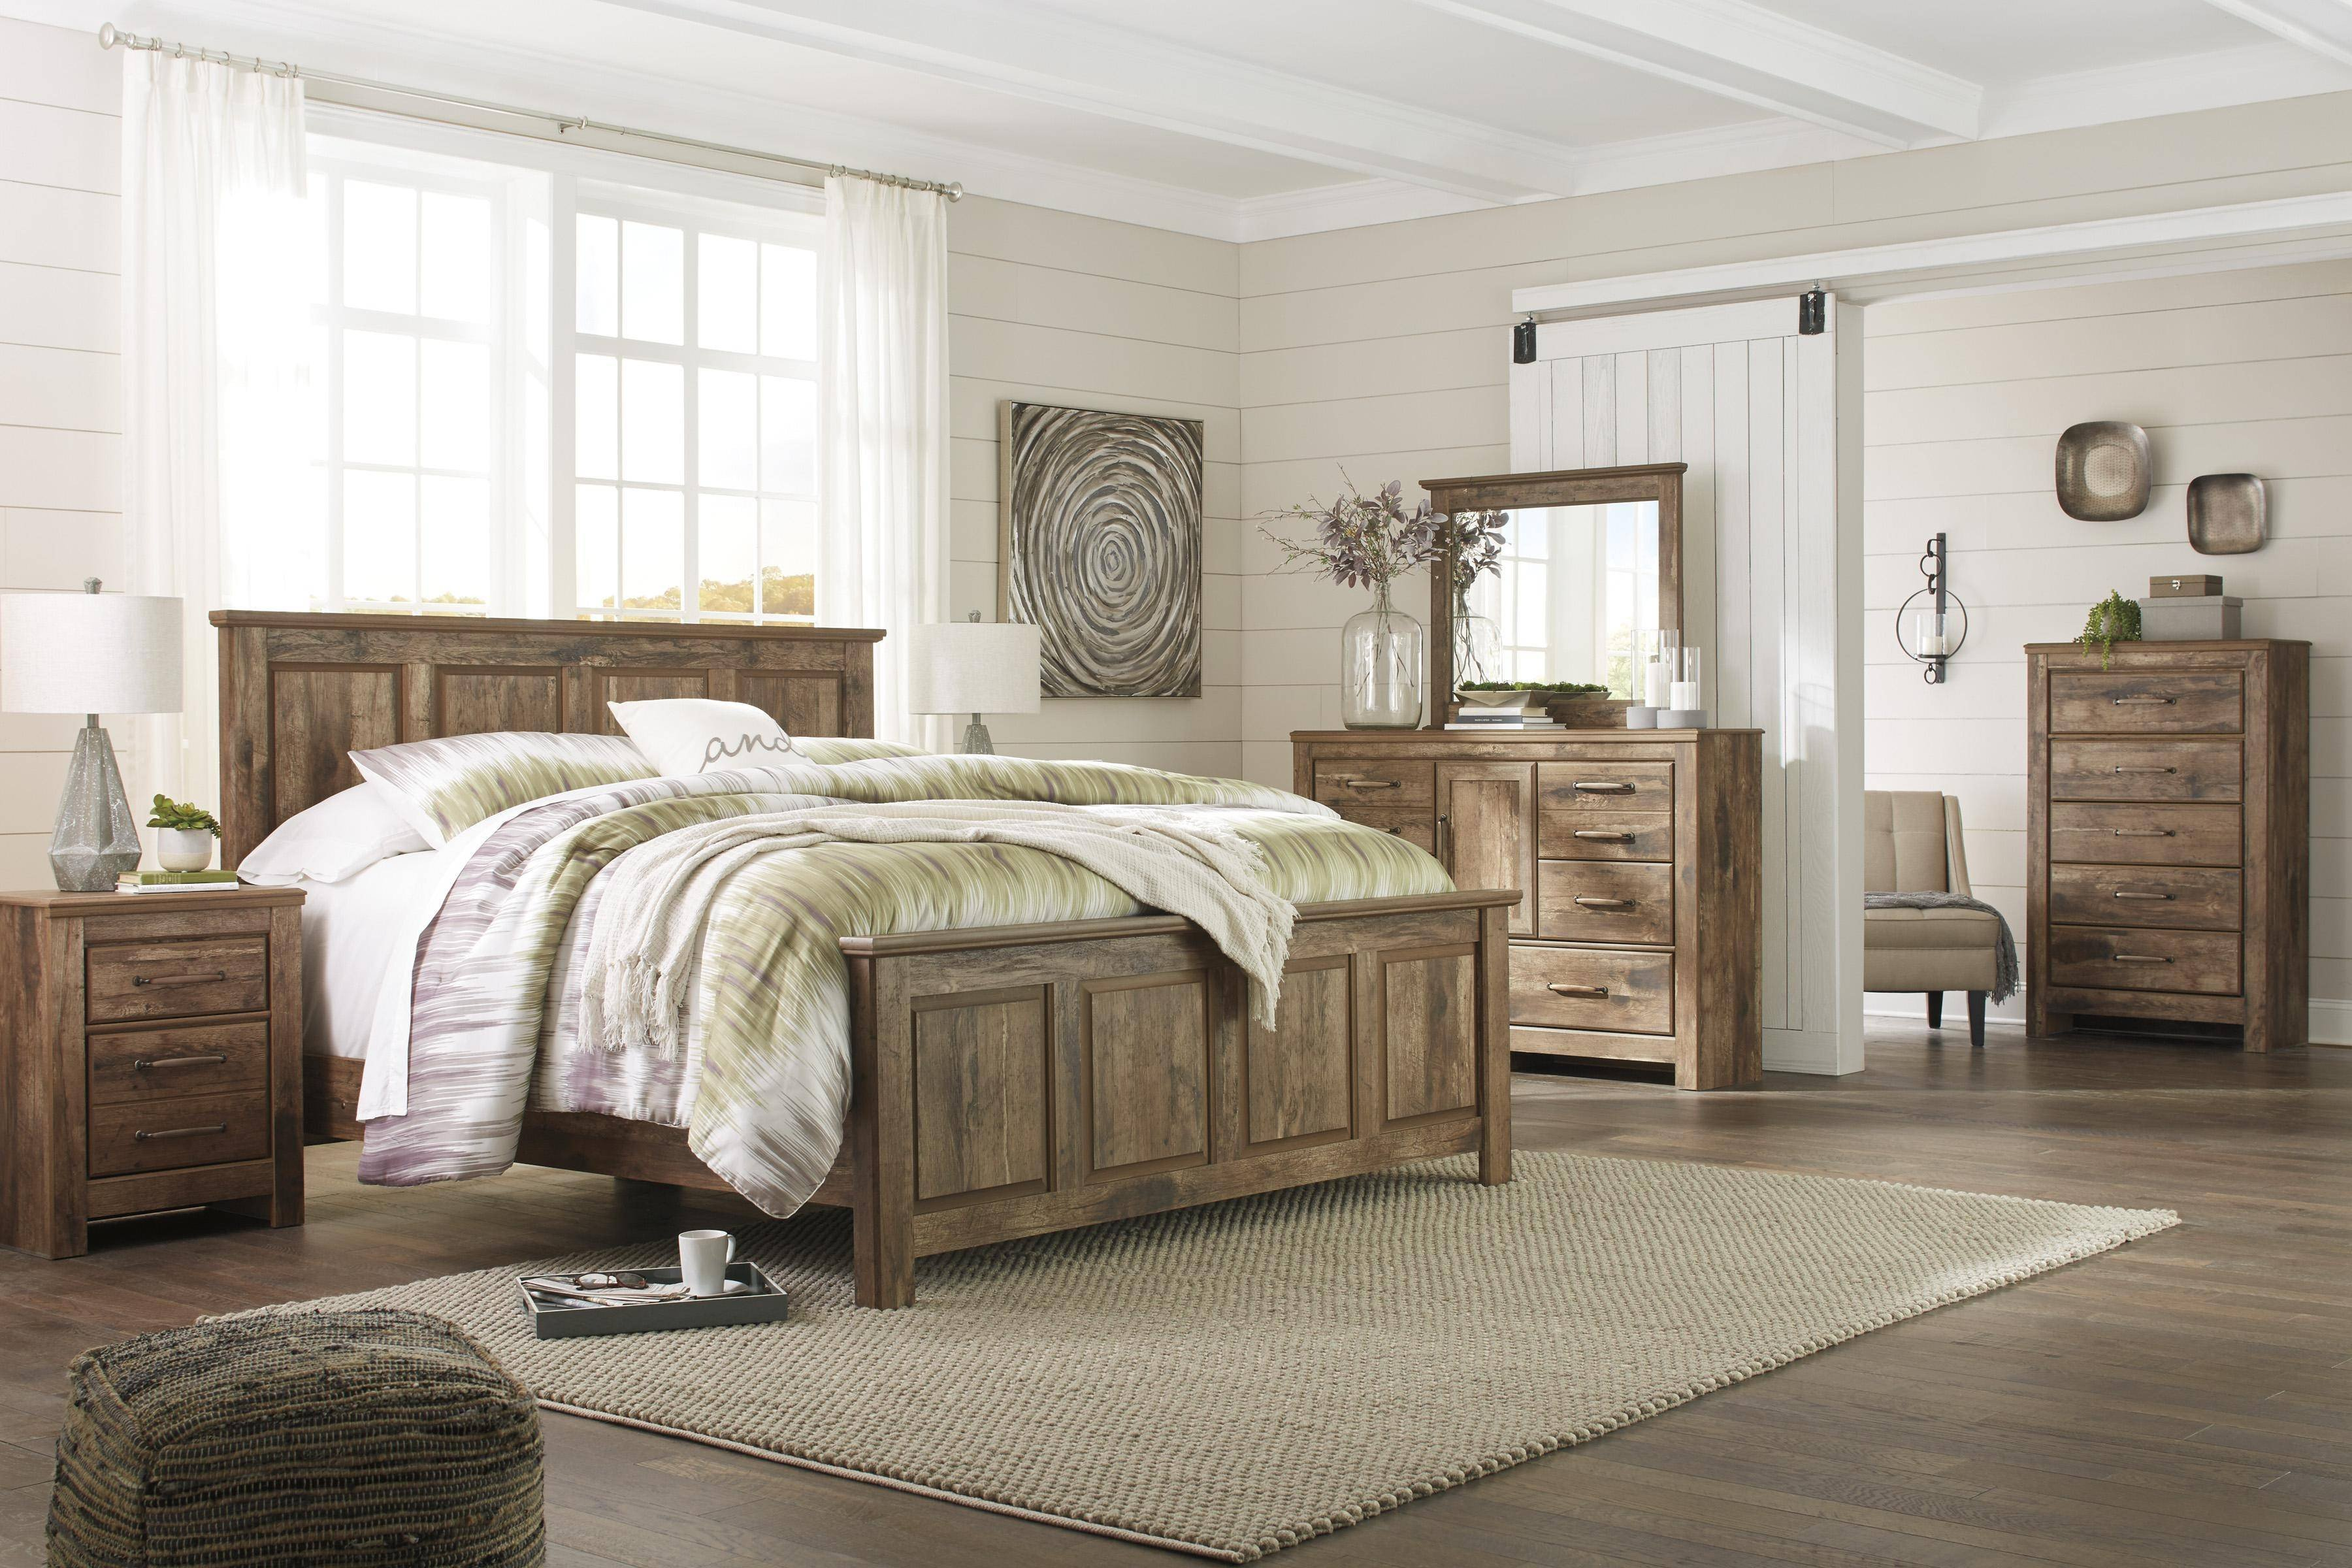 Ashley Furniture Bedroom Set 14 Piece Awesome ashley Blaneville B224 King Size Panel Bedroom Set 6pcs In